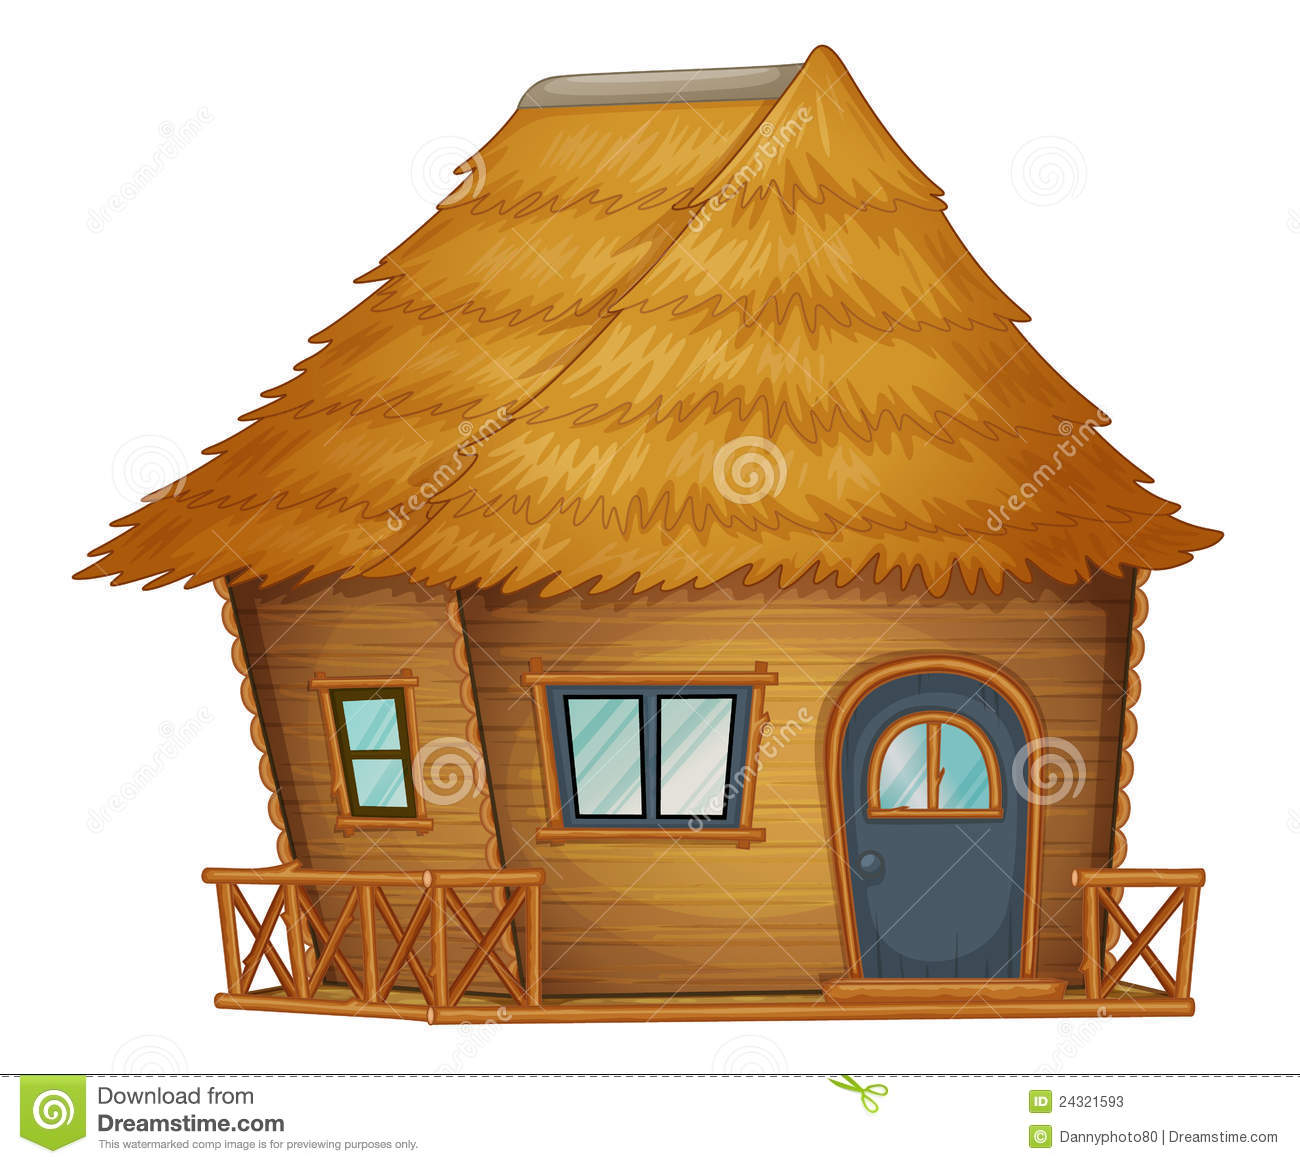 Hut or cabin on a white background.